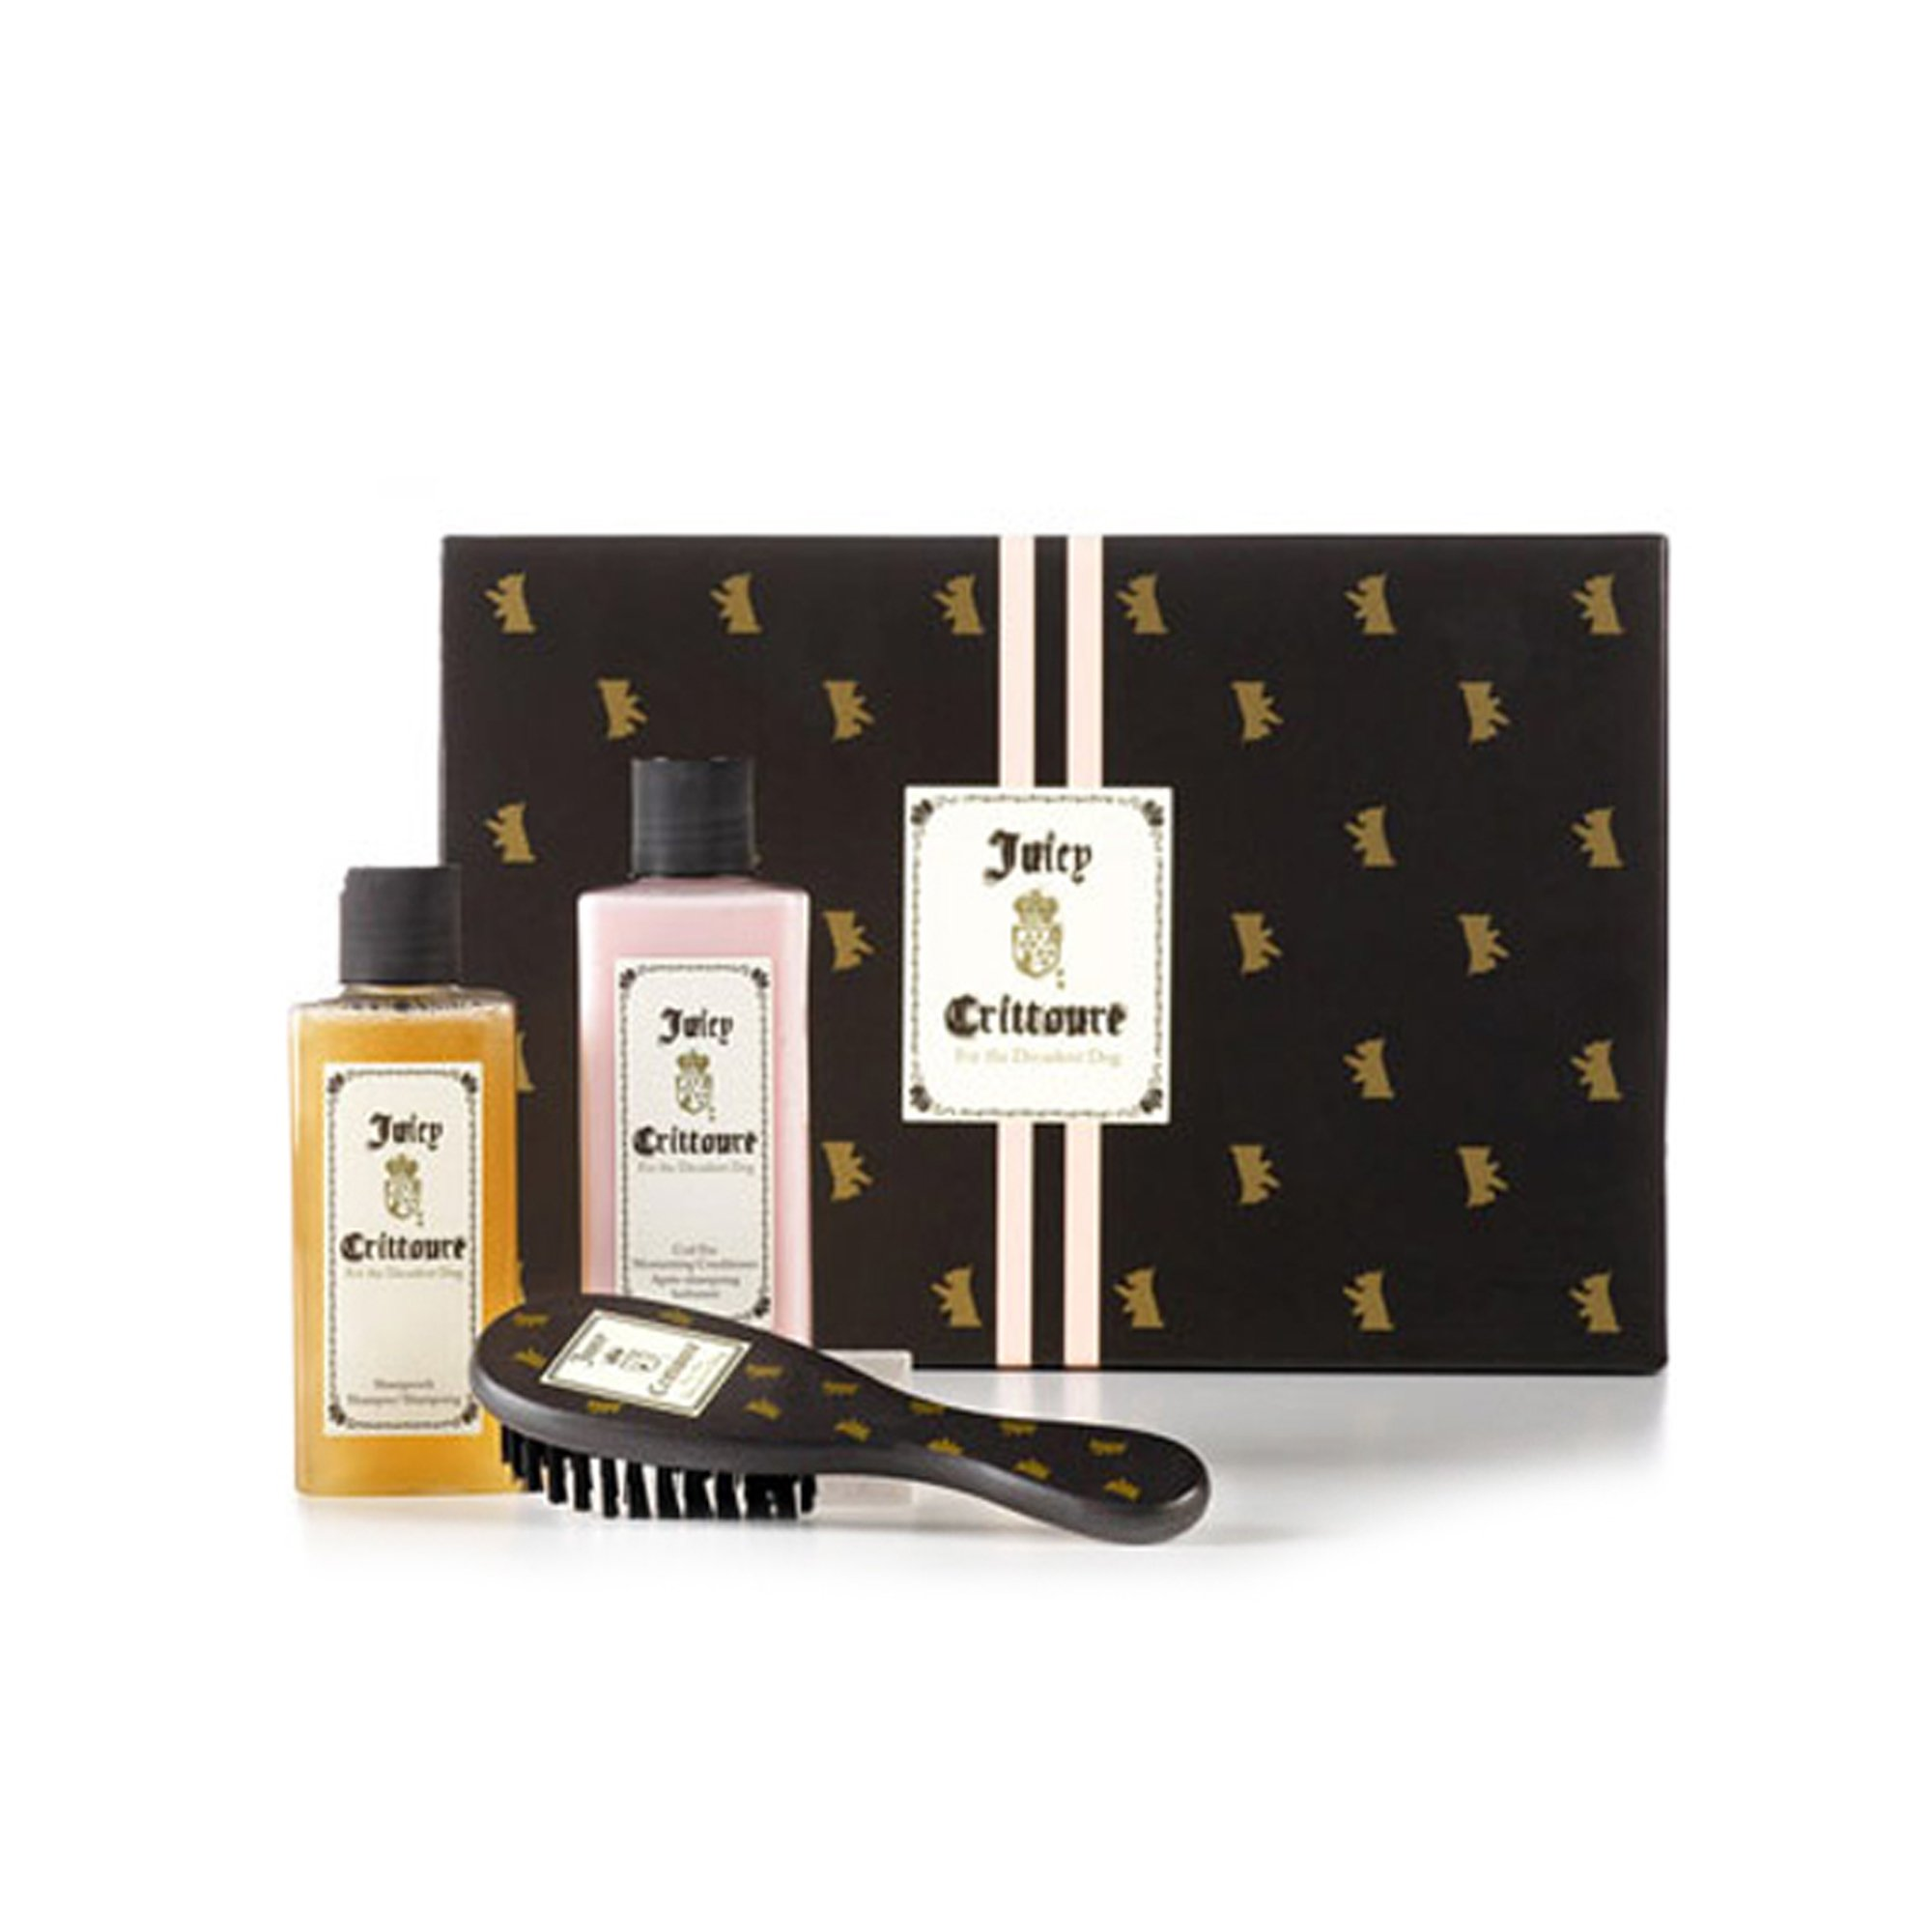 Juicy Crittoure by Juicy Couture | 3-Piece Gift Set | Shampoo (8 fl oz), Conditioner (8 fl oz), & Dog Brush